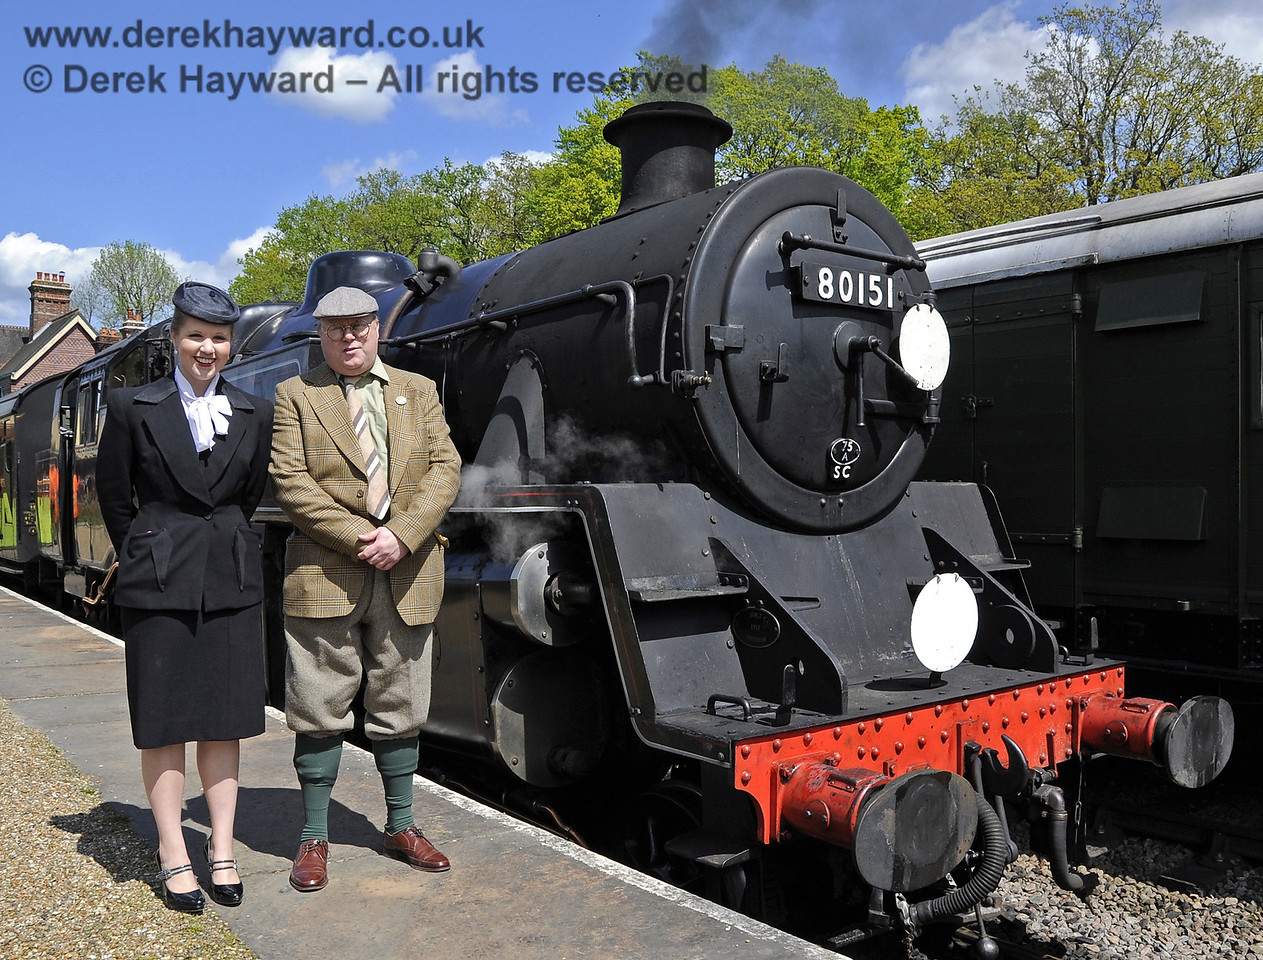 Louise from Customer Services and Tim Baker, Commercial Director, pose beside 80151 during a Southern at War event.  12.05.2012  4659